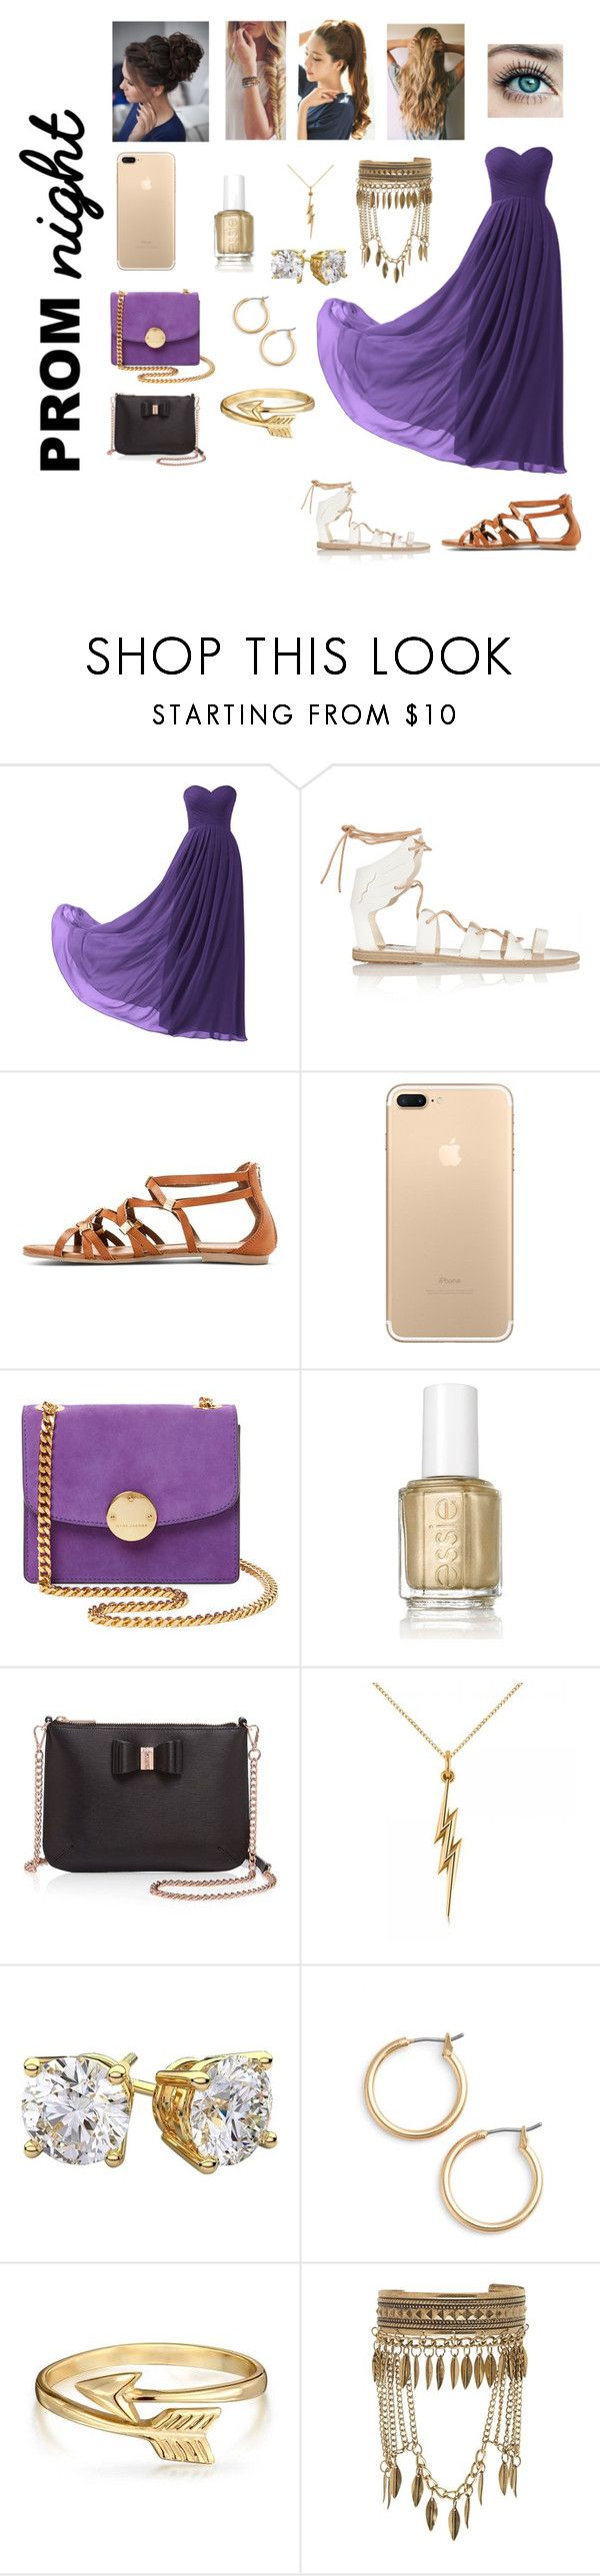 """Prom Night: Greek Goddess"" by elizabethsolace ❤ liked on Polyvore featuring Remedios, Ancient Greek Sandals, Mossimo, Marc Jacobs, Essie, Ted Baker, Allurez, Nordstrom, Bling Jewelry and New Look"